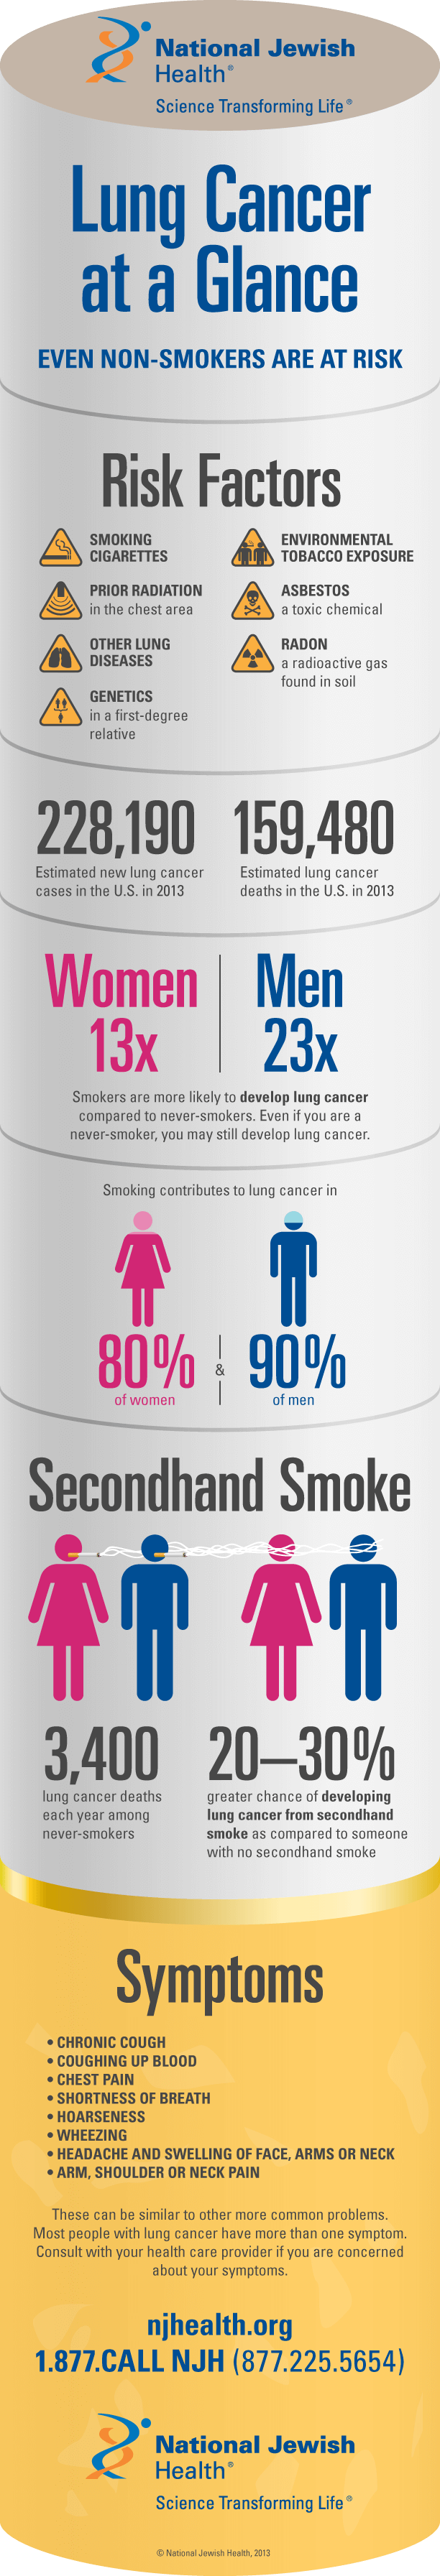 Lung Cancer at a Glance Infographic